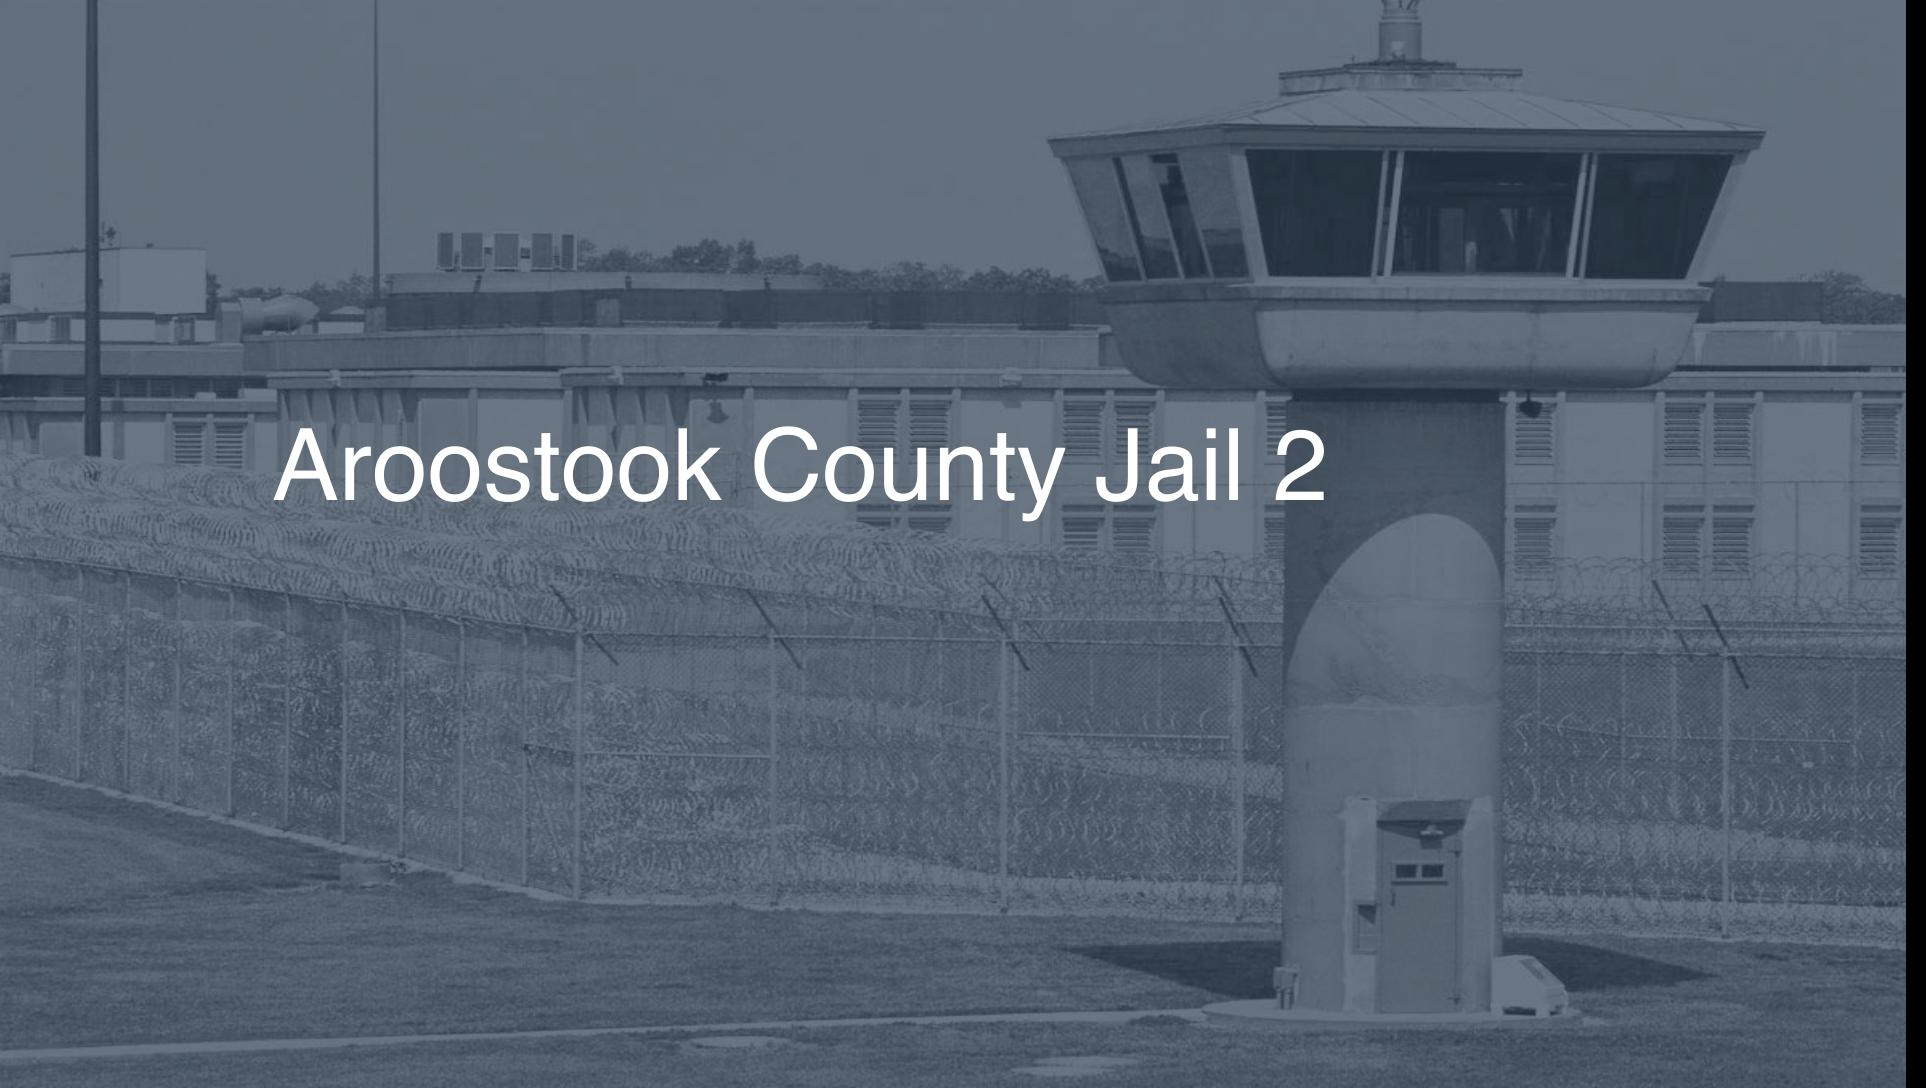 Aroostook County Jail correctional facility picture